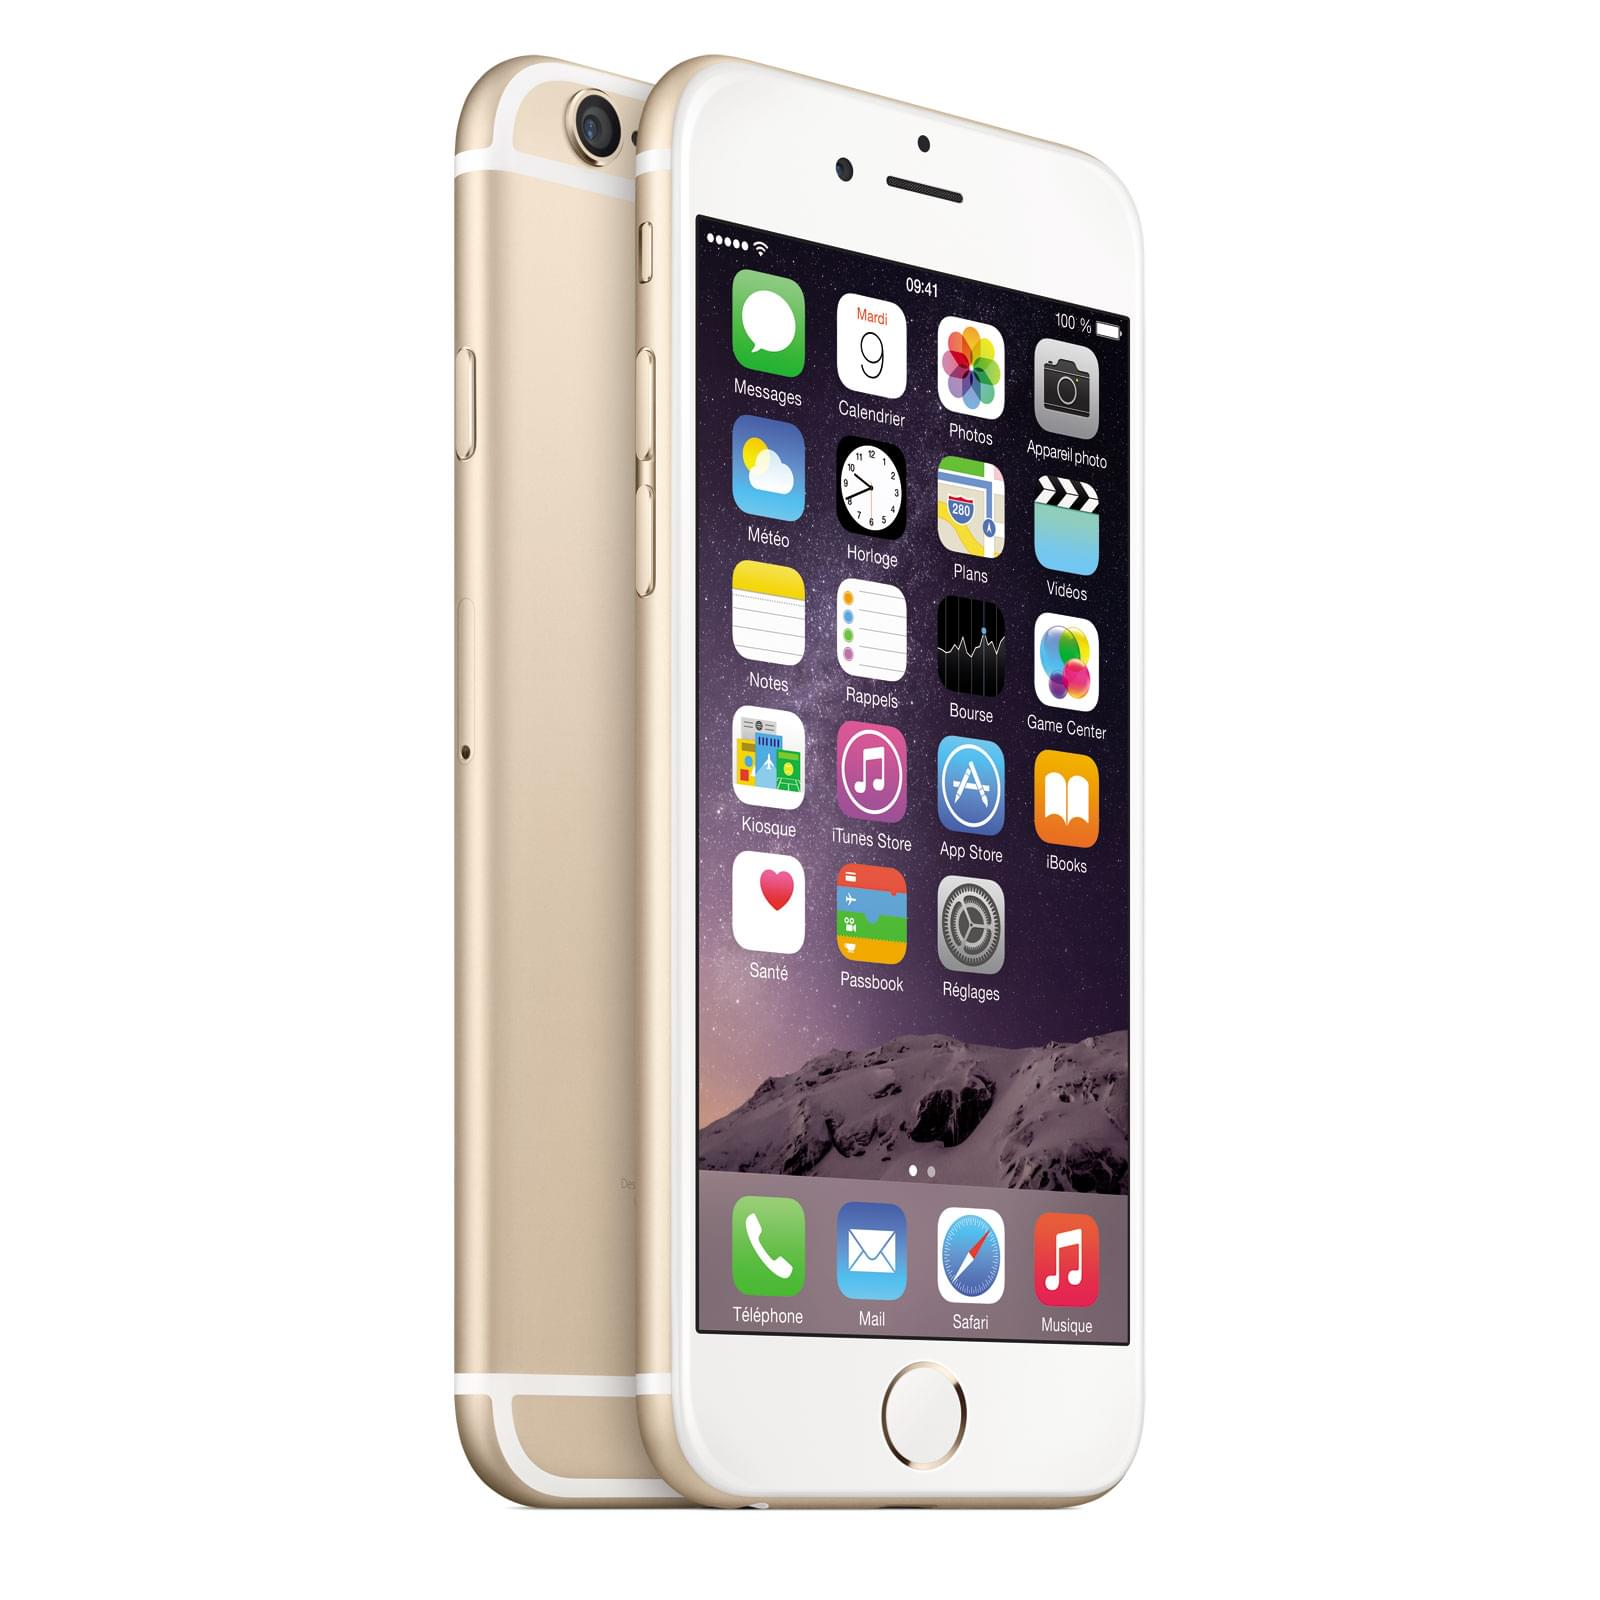 Apple iPhone 6 16Go Gold - Téléphonie Apple - Cybertek.fr - 0